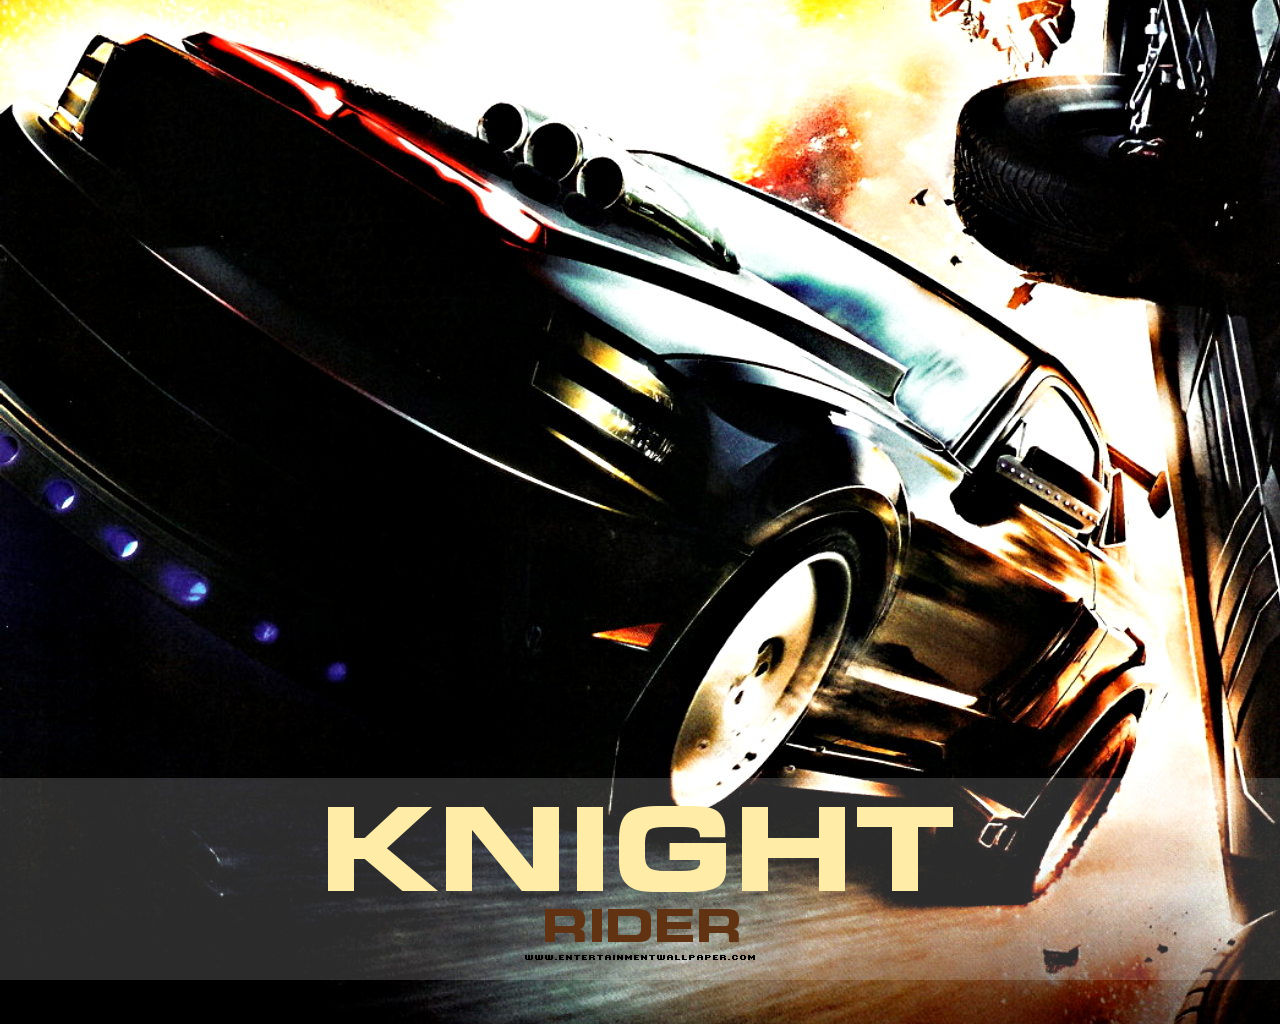 Knight Rider Wallpaper 1280x1024 1280x1024